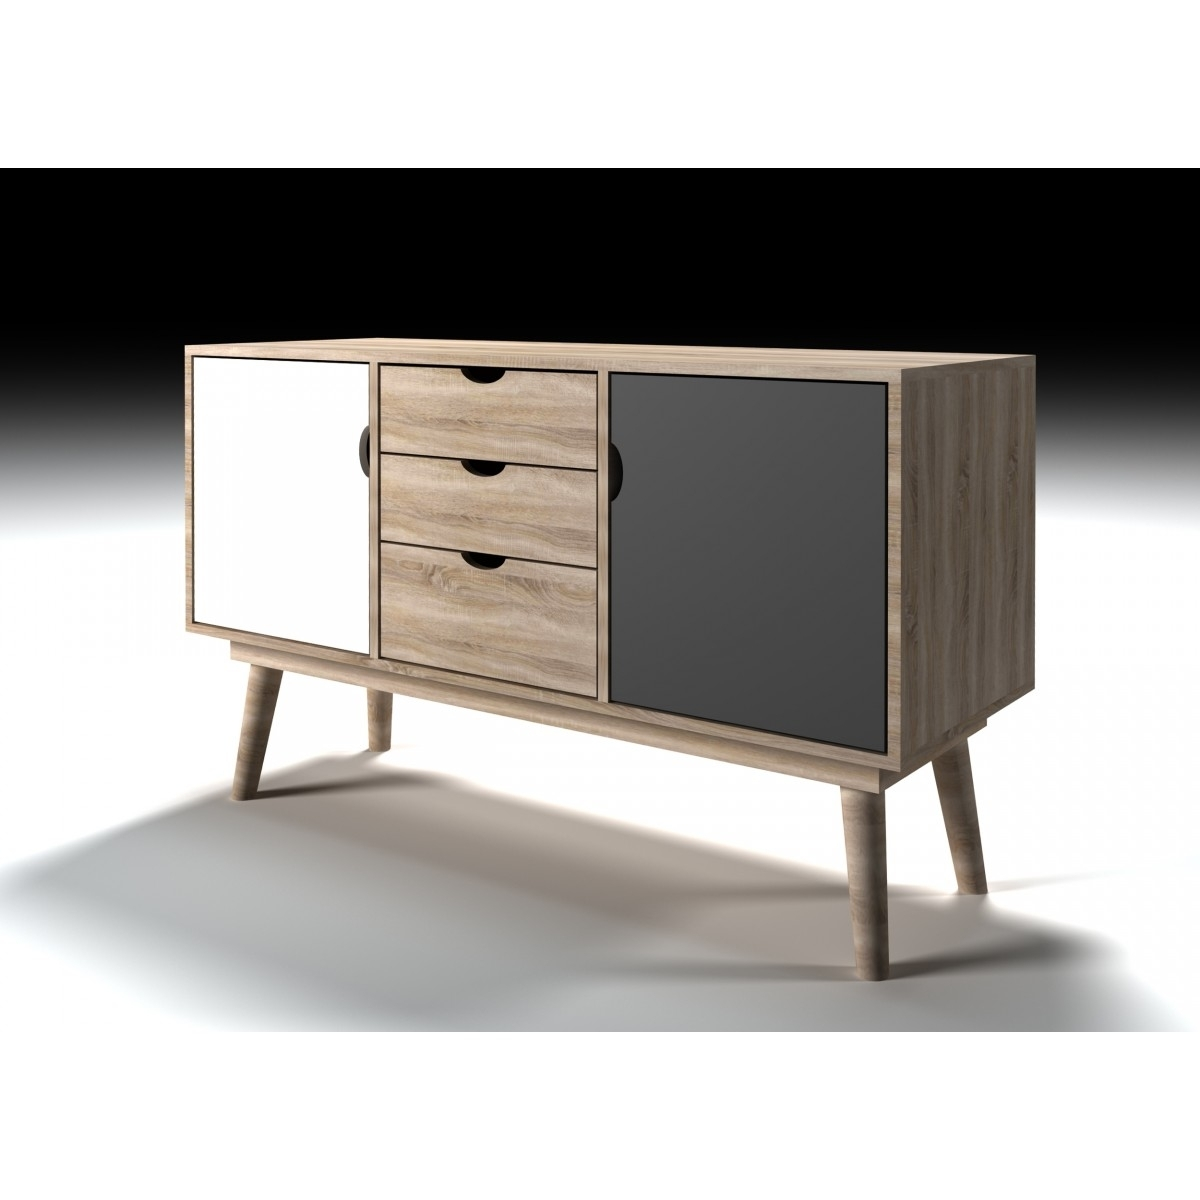 Lpd Scandi 2 Door 2 Drawer Oak Sideboard – White Or Grey – Home Done Inside Newest 3 Drawer/2 Door White Wash Sideboards (View 16 of 20)